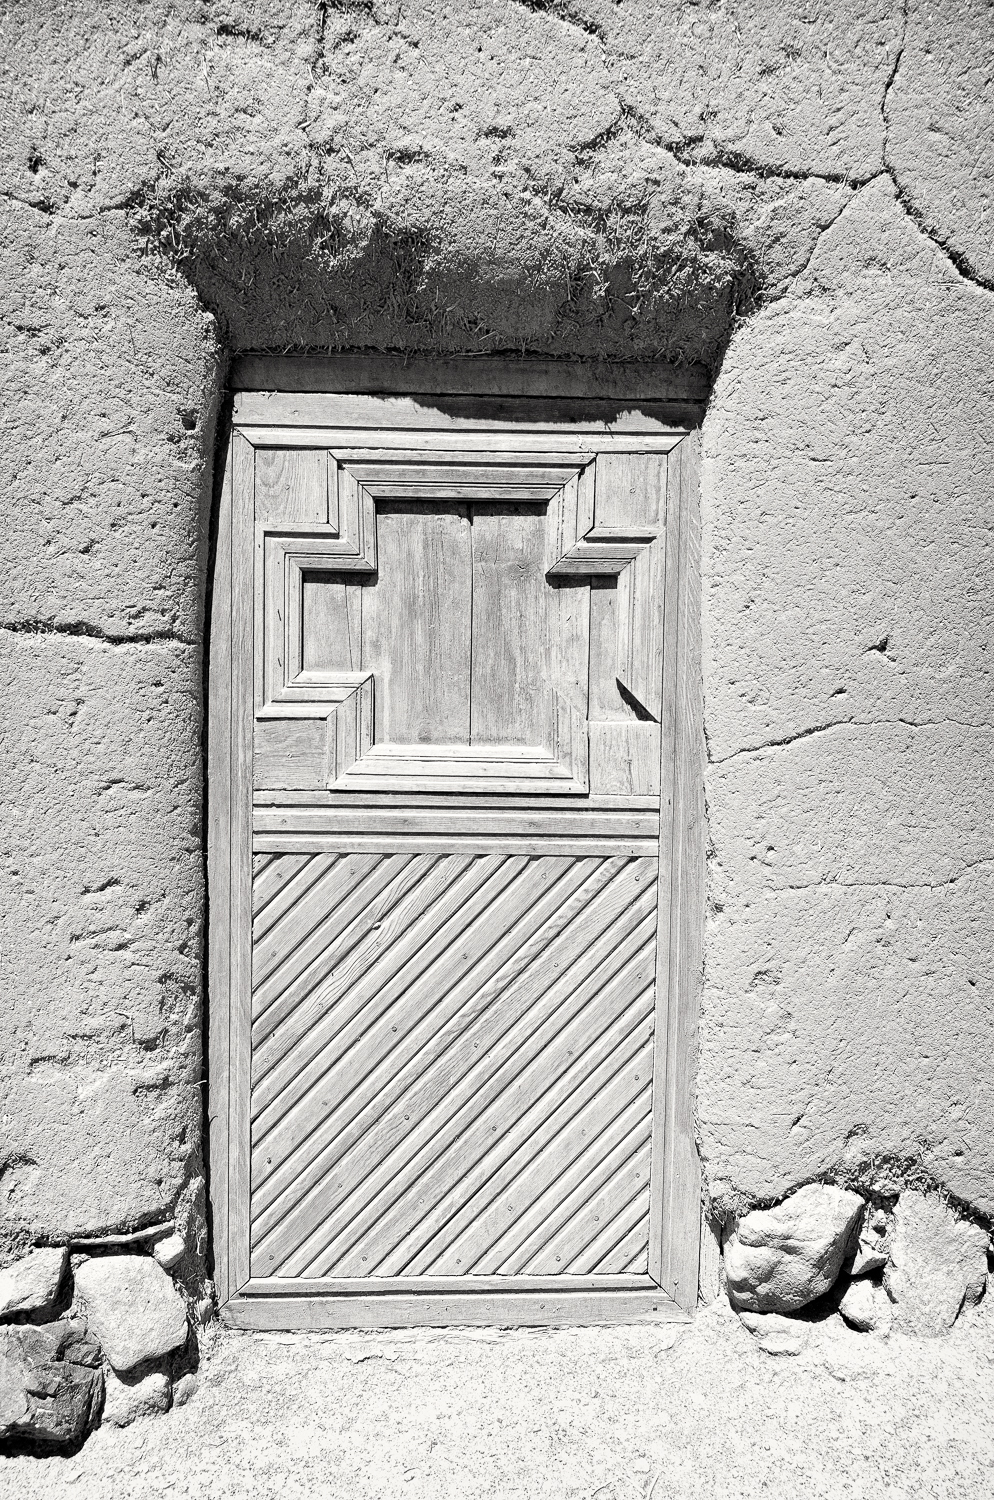 Door at Las Golandrinas, Santa Fe, New Mexico, 2013